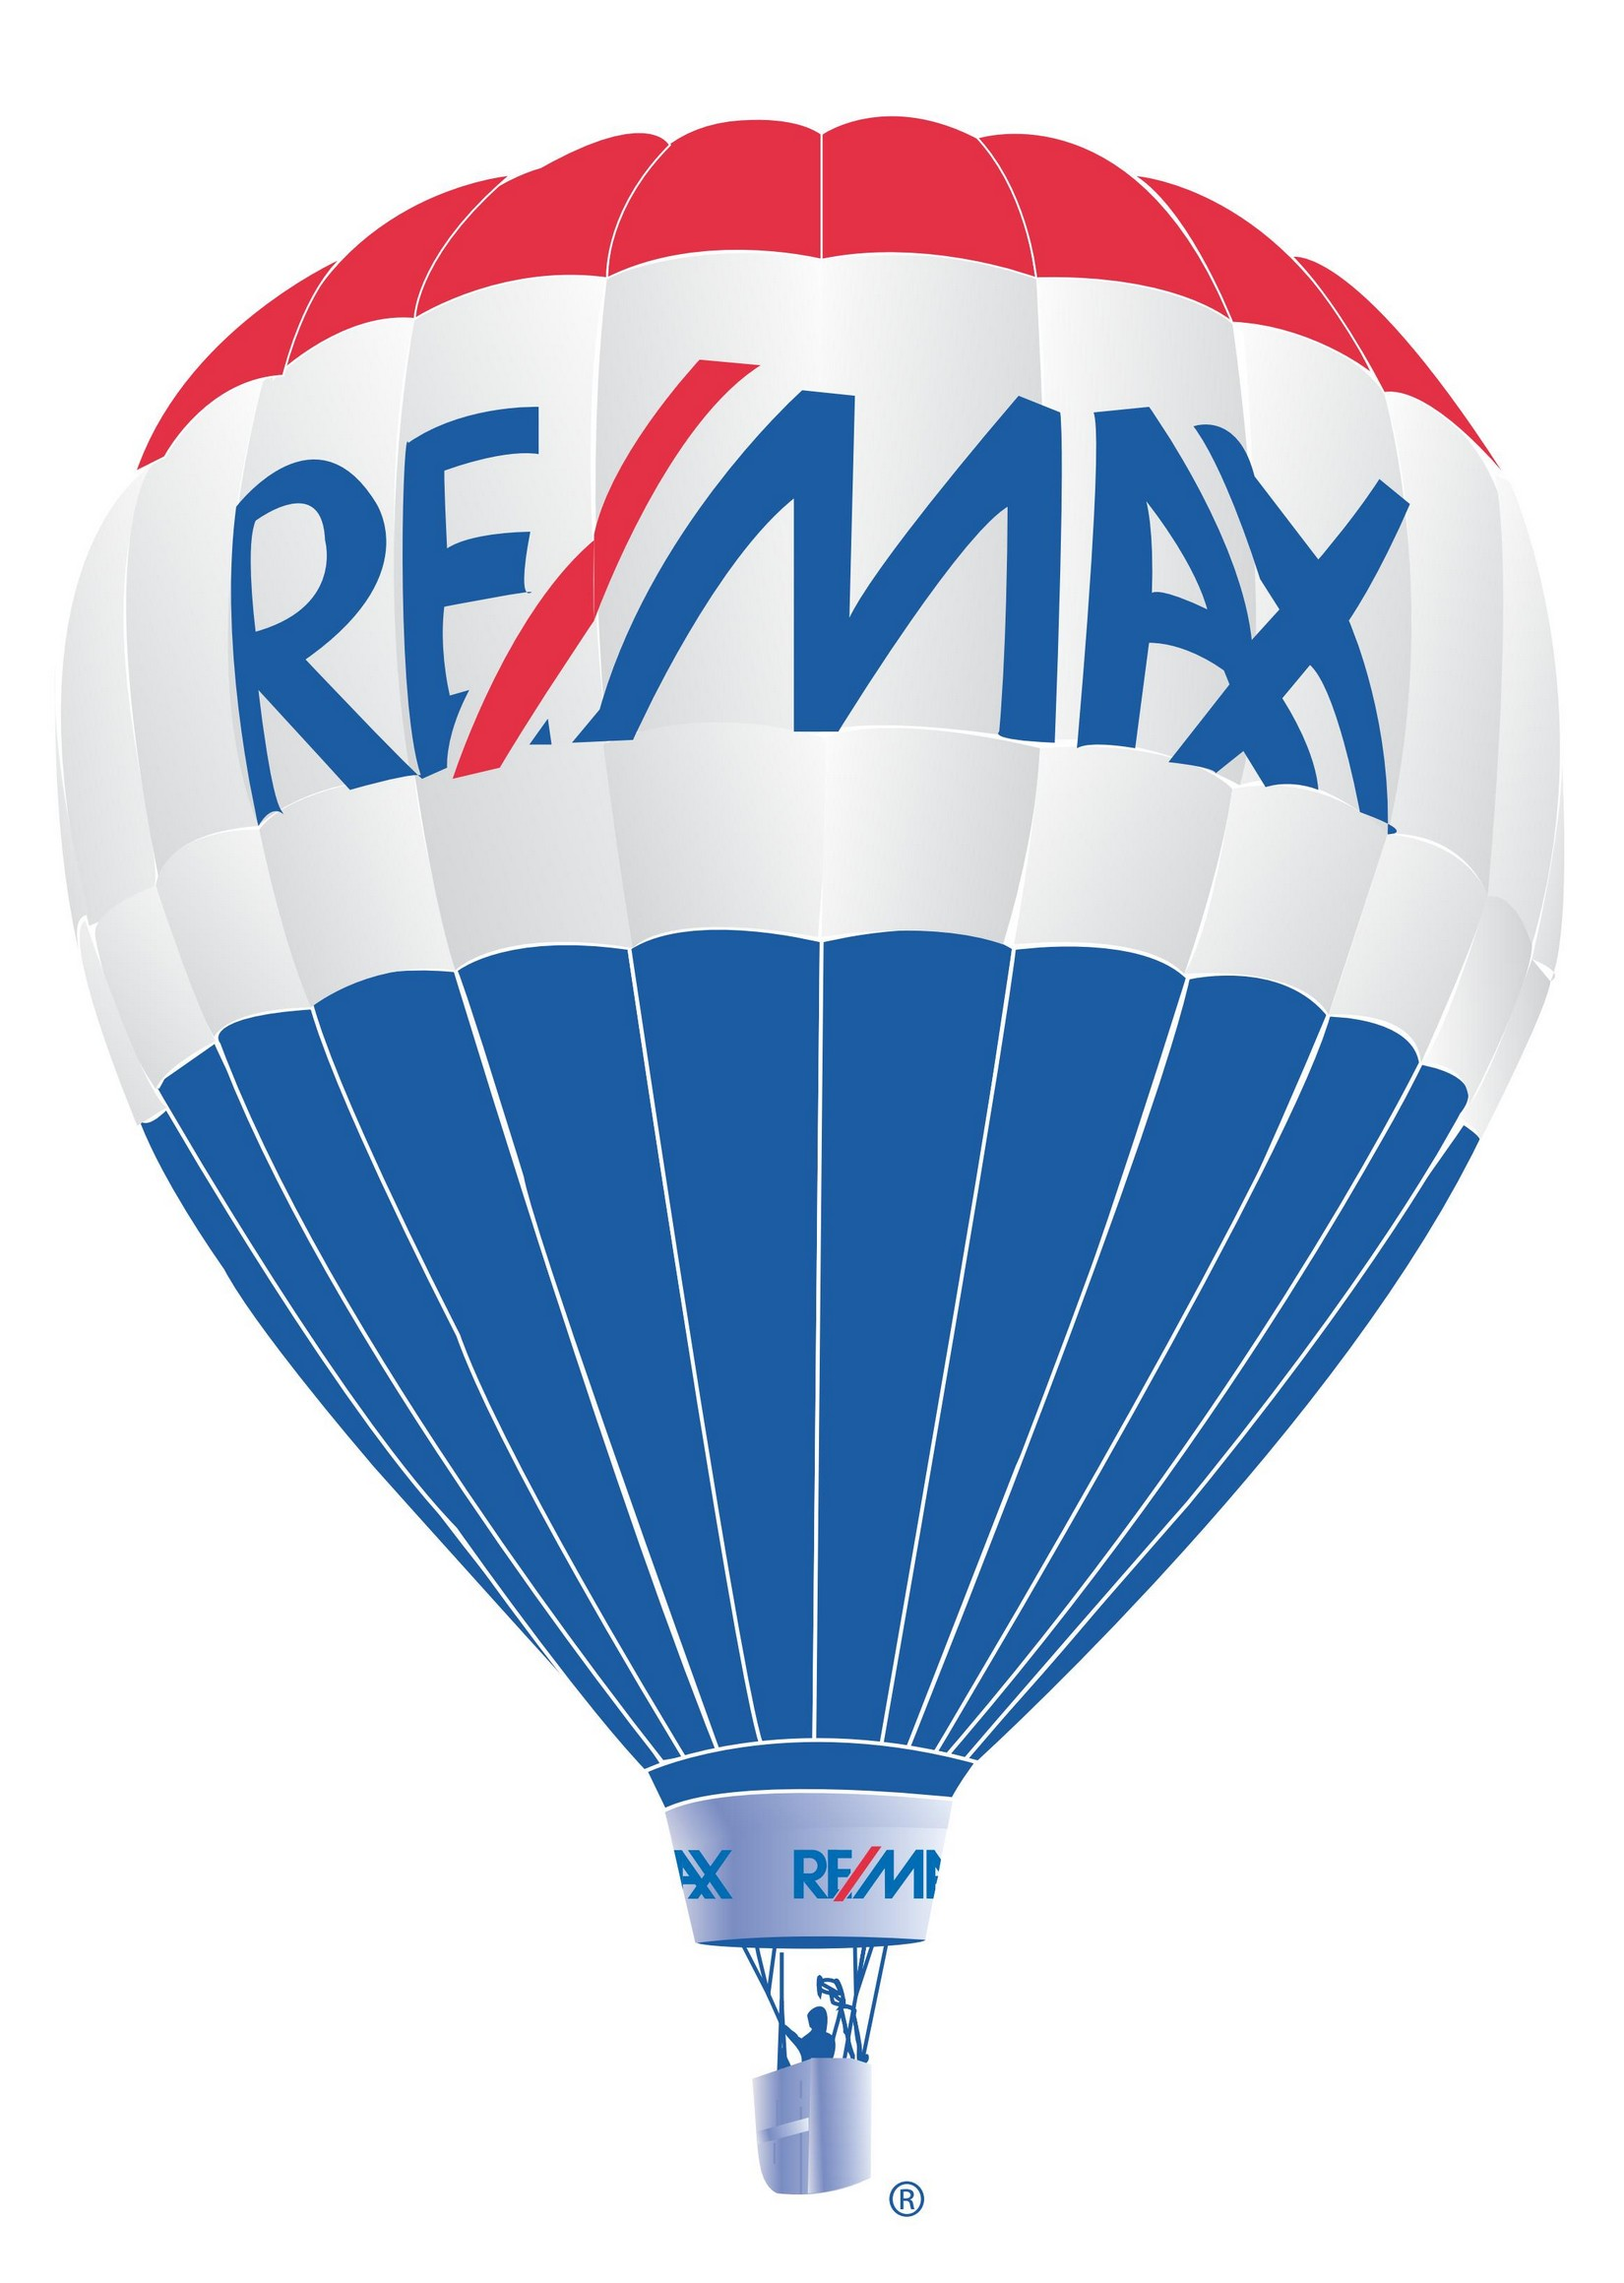 Remax Balloon Clipart.